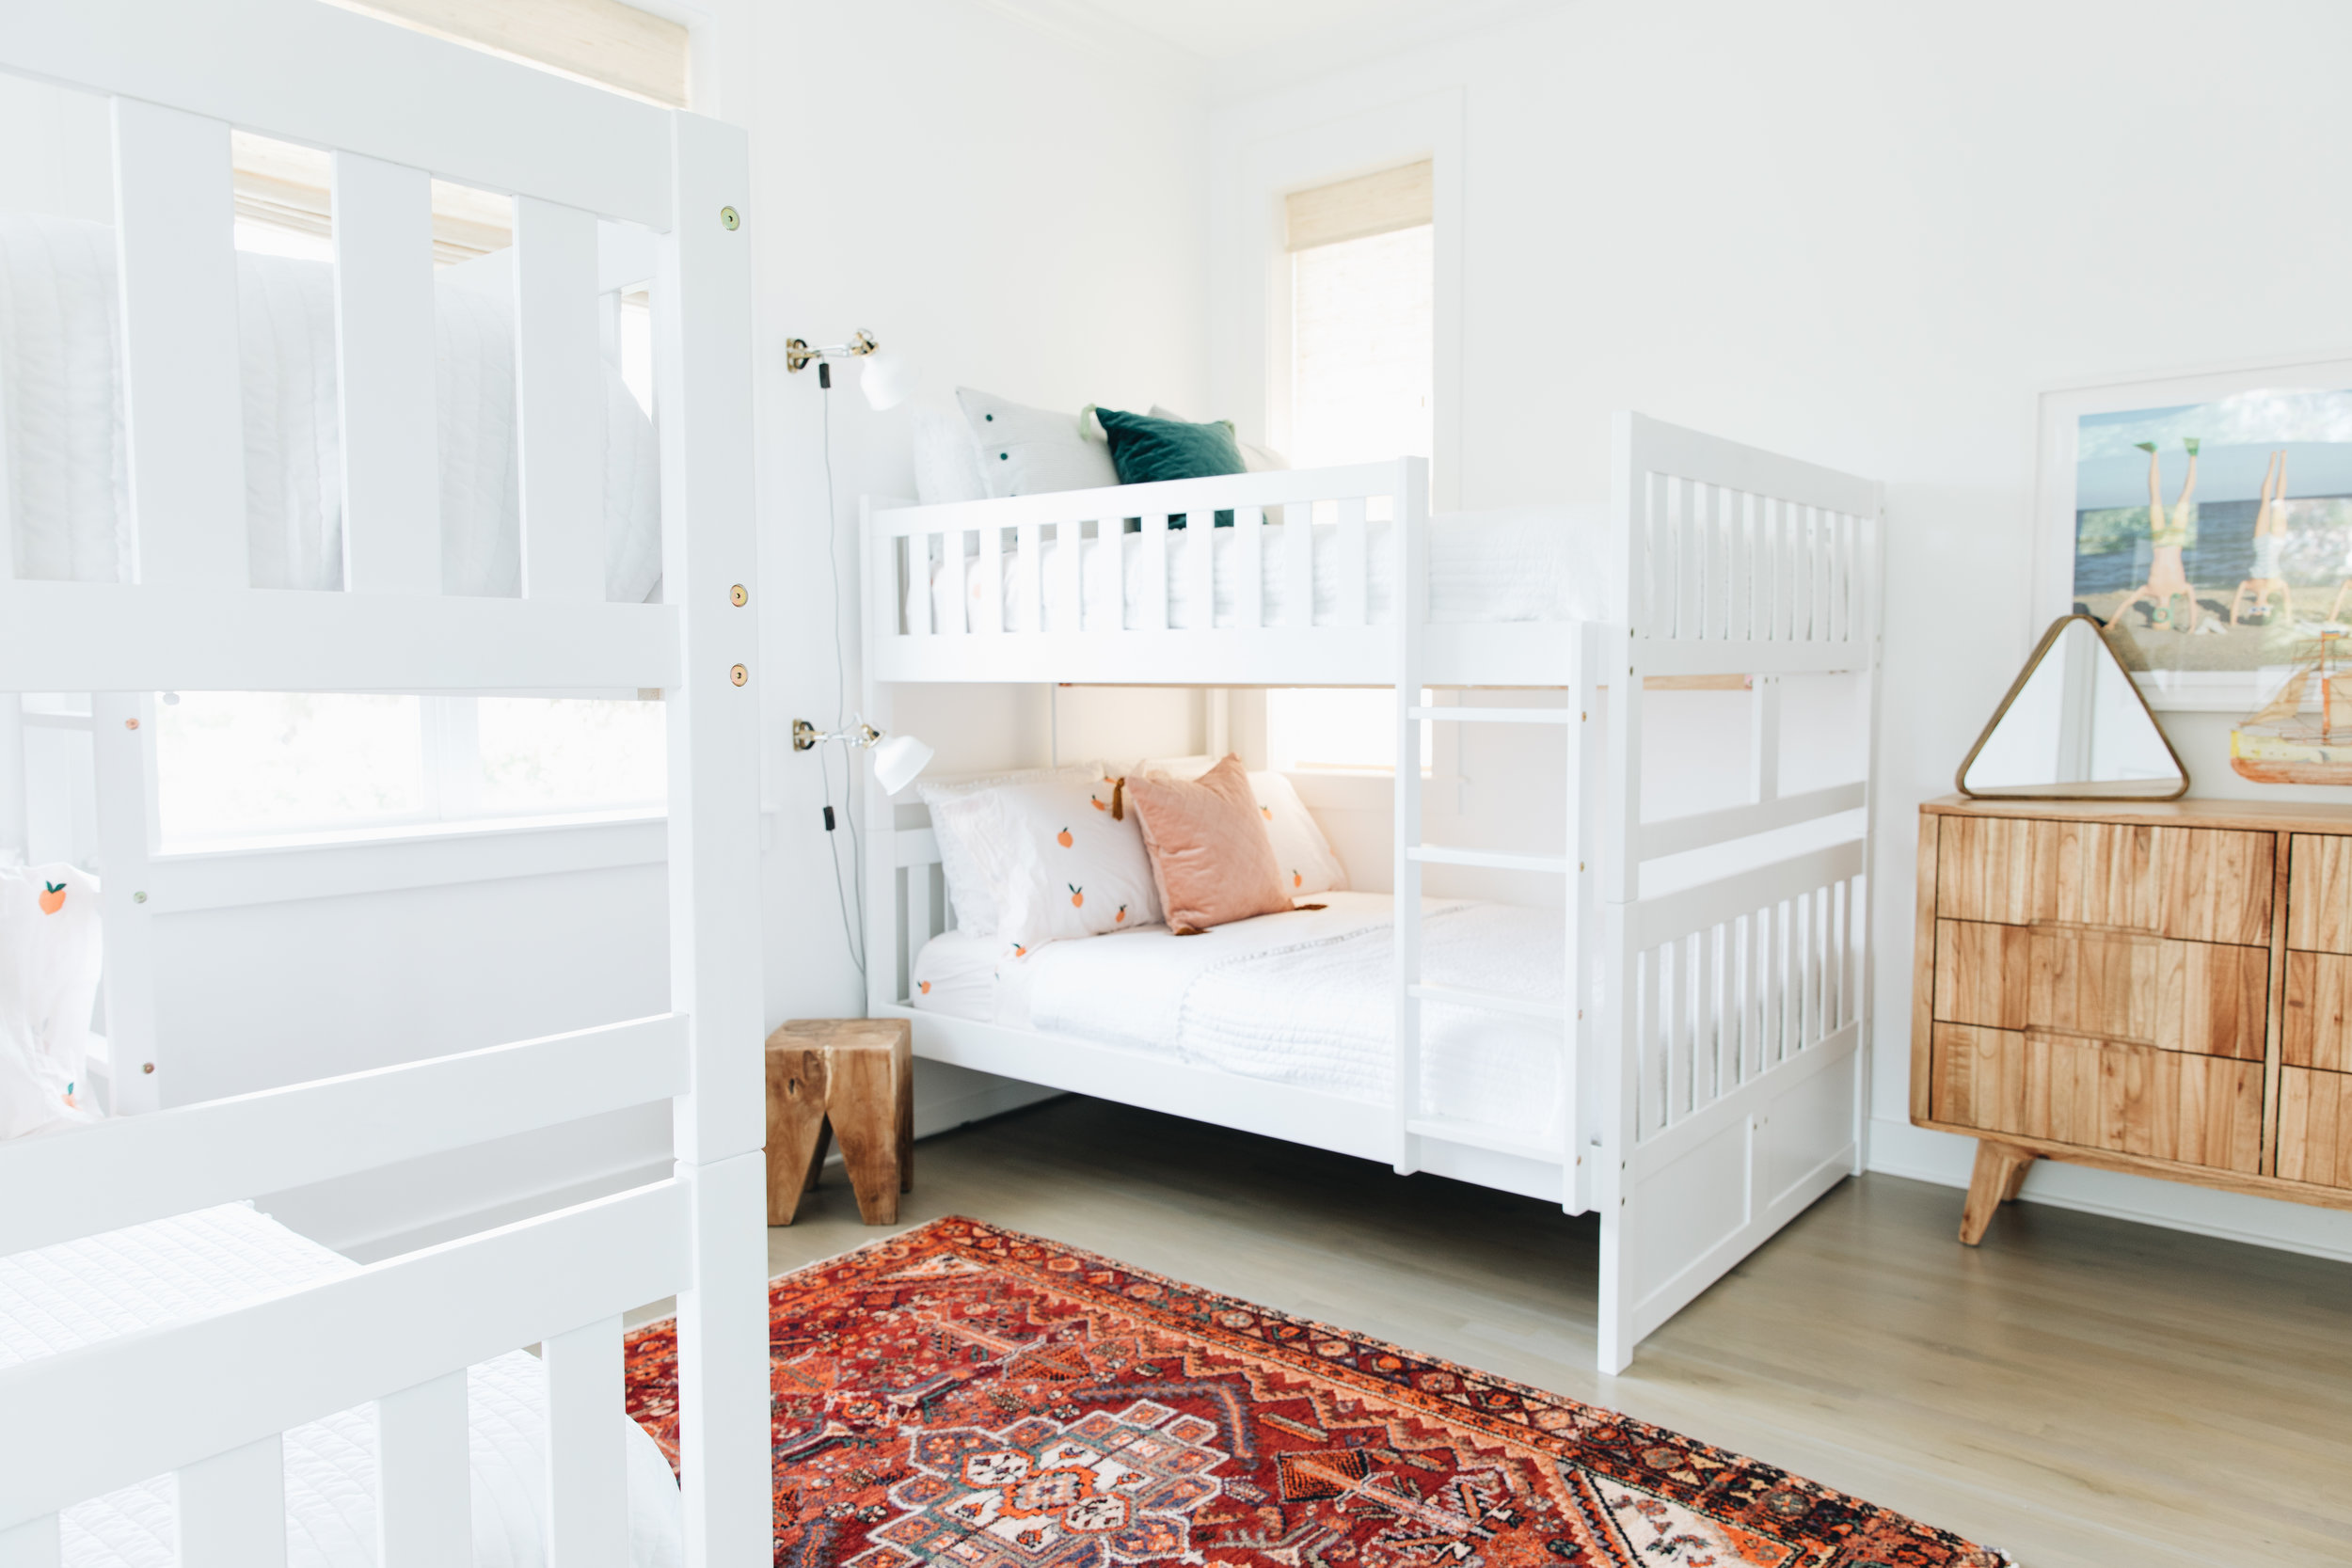 Bunk Beds    Duvets    Clementine Sheets (Similar)    Wood Block Stool